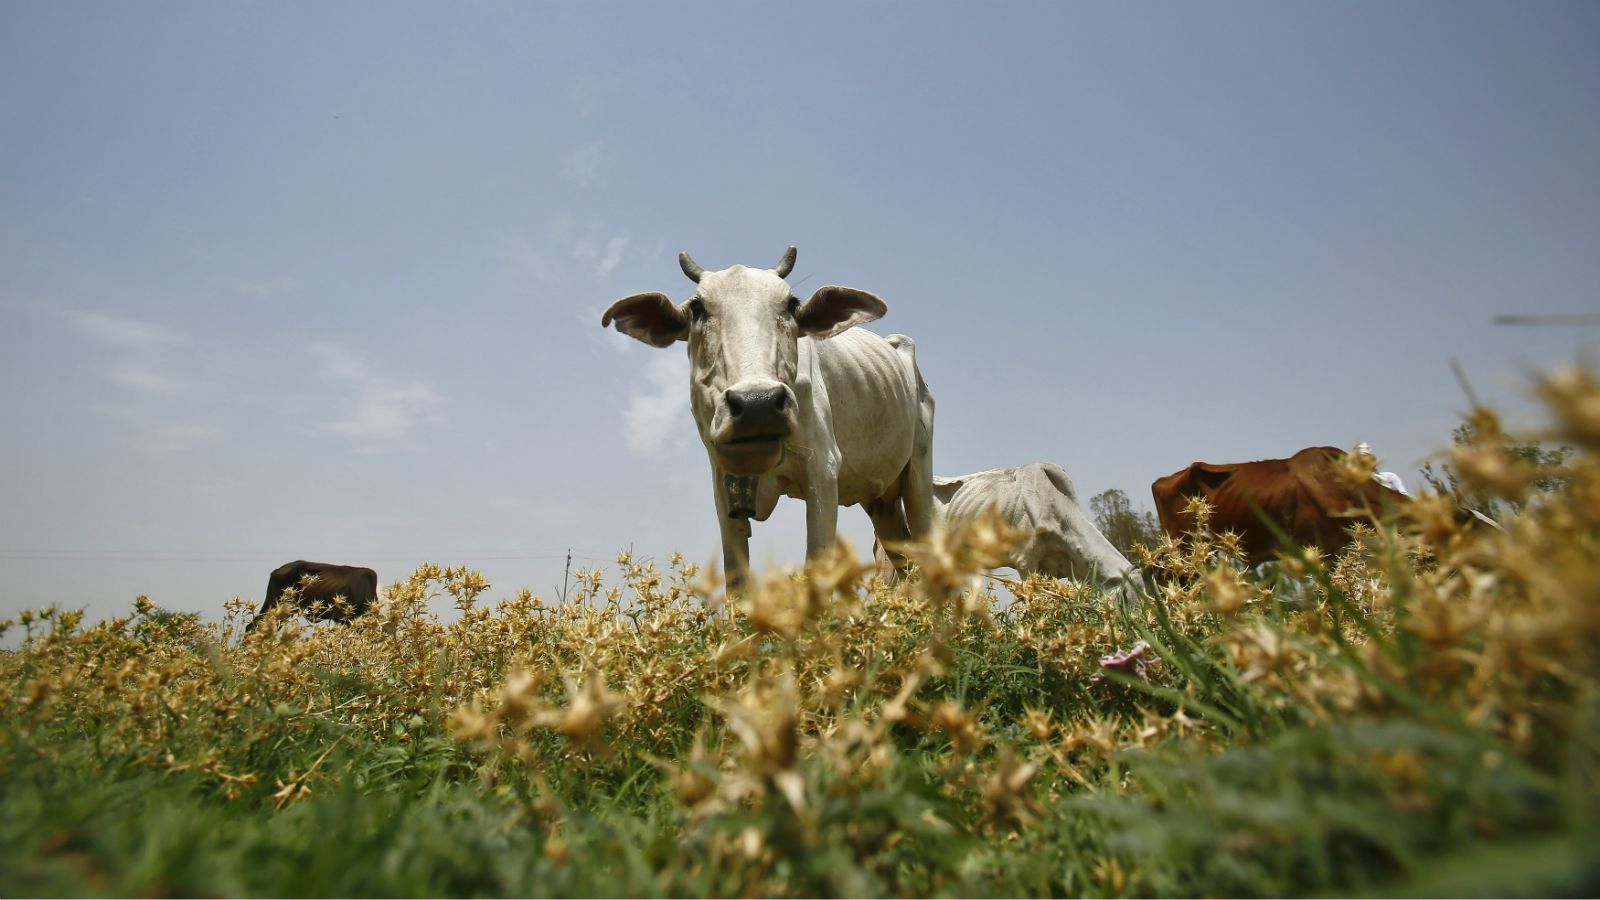 India-Cow-Cow slaughter-Narendra Modi-Beef